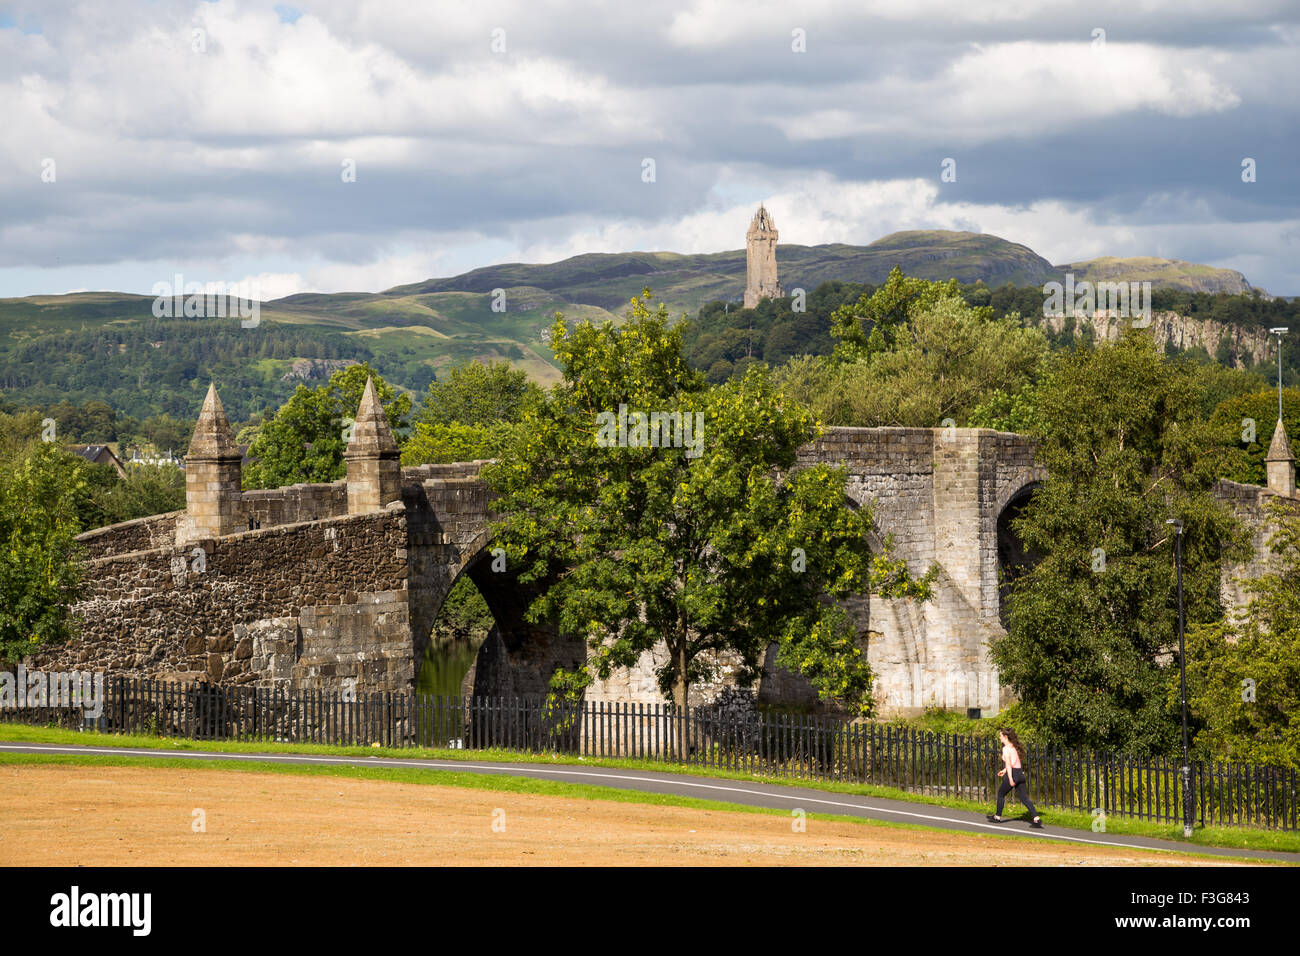 Stirling Old Bridge and The National Wallace Monument on Abbey Craig, Stirling in Scotland Stock Photo